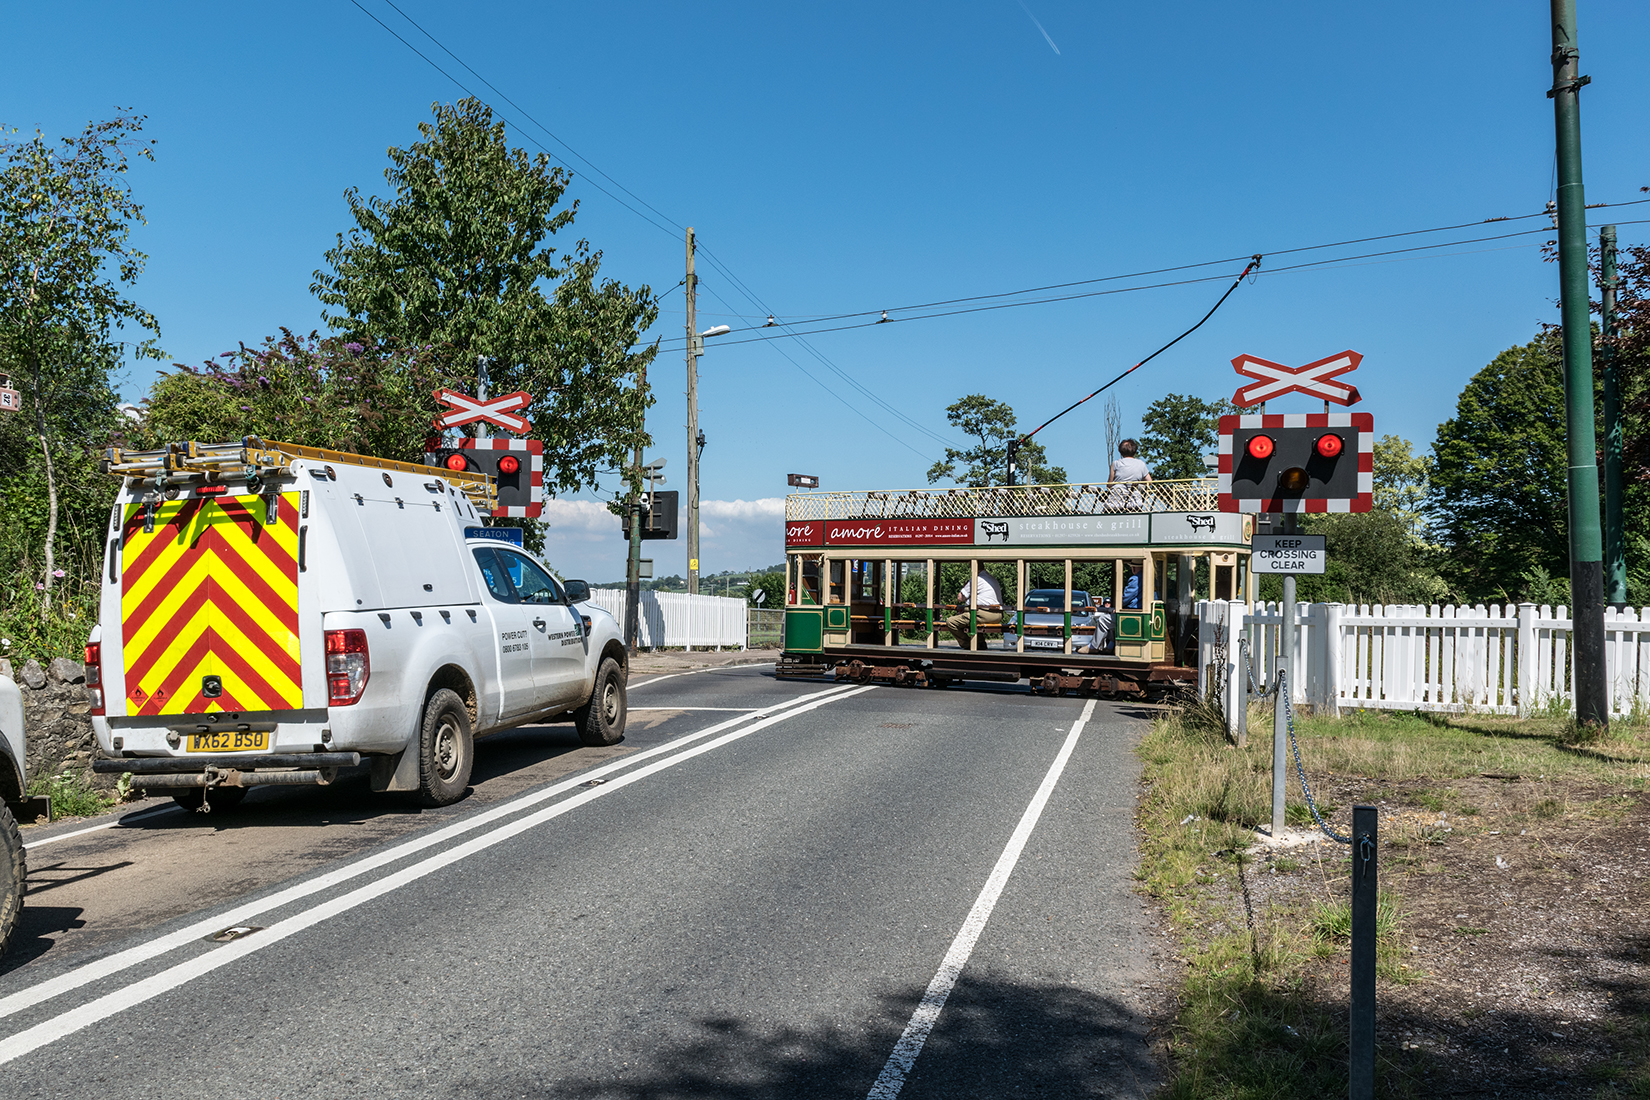 Traffic held for car 6 at Colyford level crossing